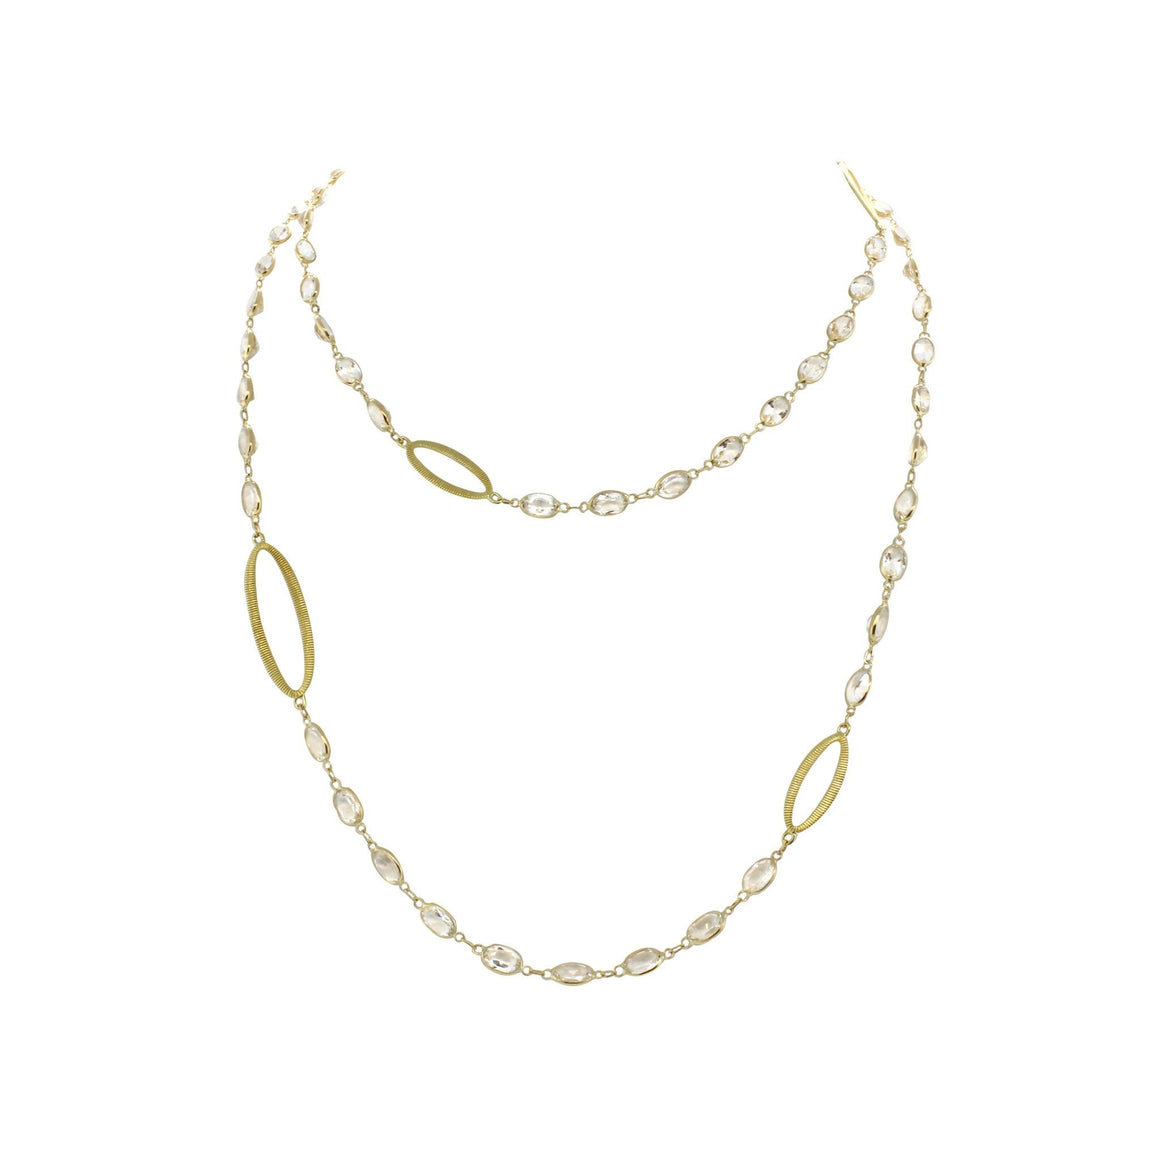 Gold and White Topaz Necklace-Sloane Street-Duncan & Boyd Jewelers